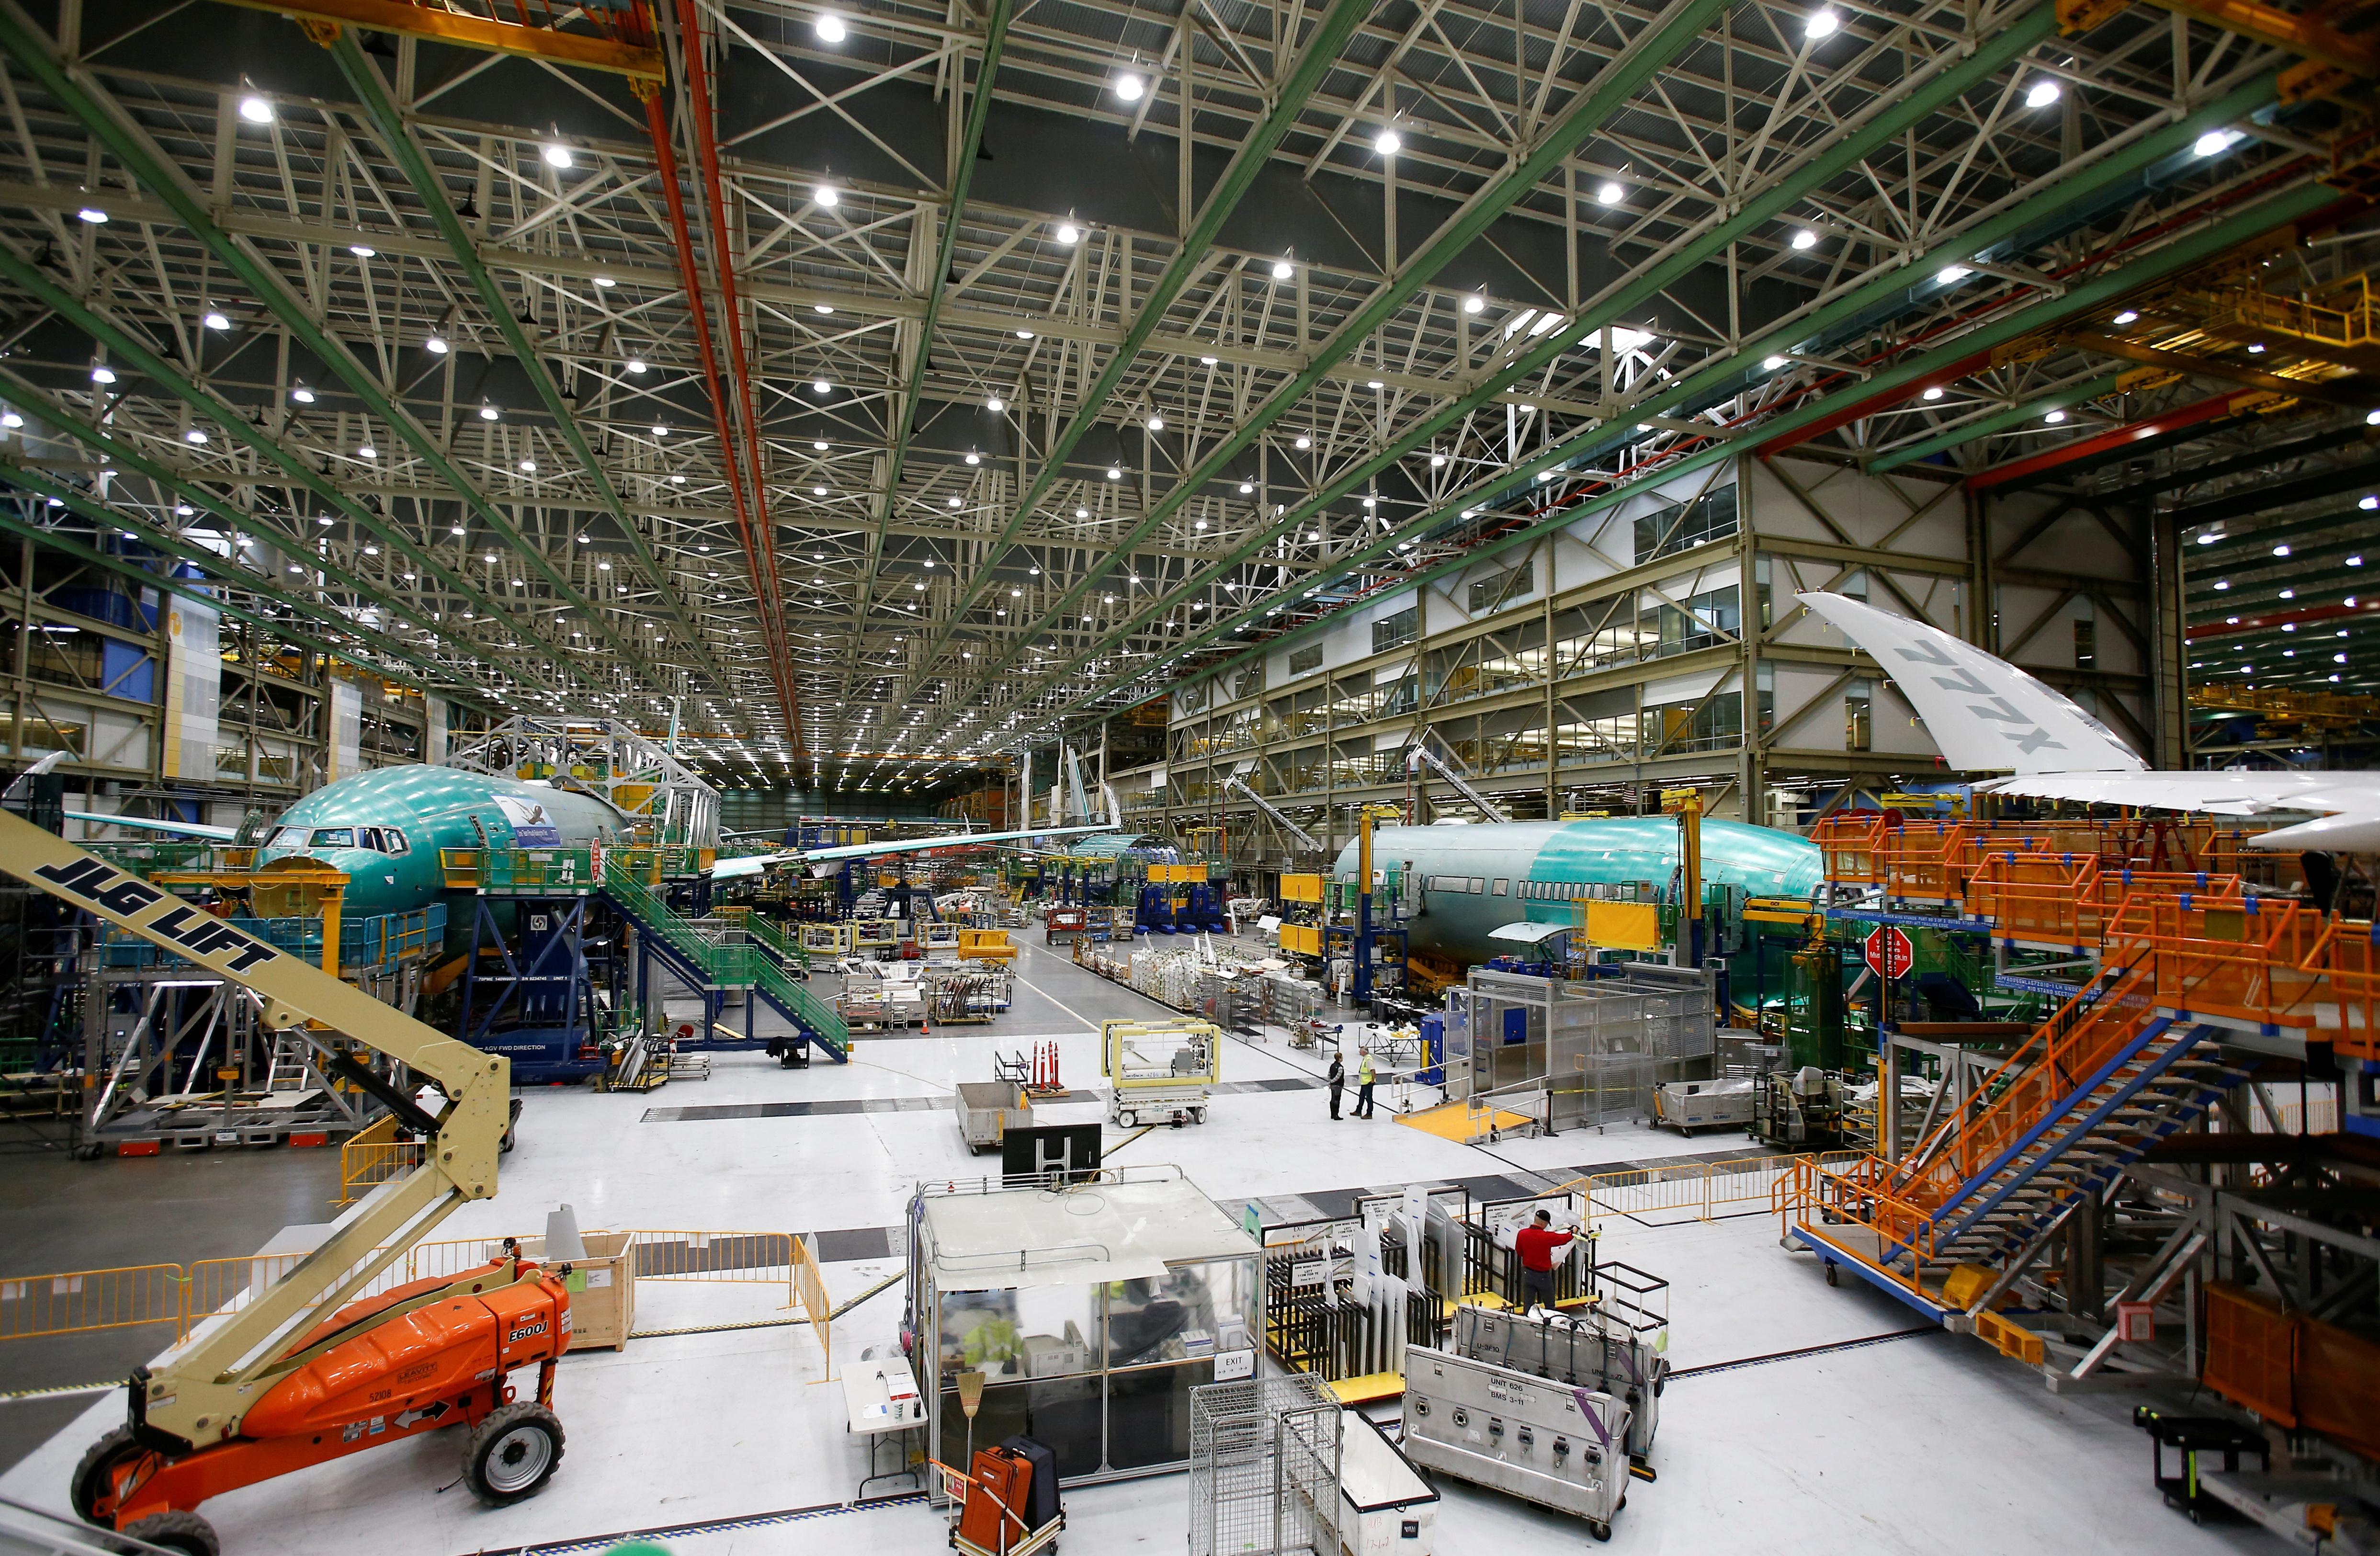 Boeing says depressurization issue led to suspension of 777X load...